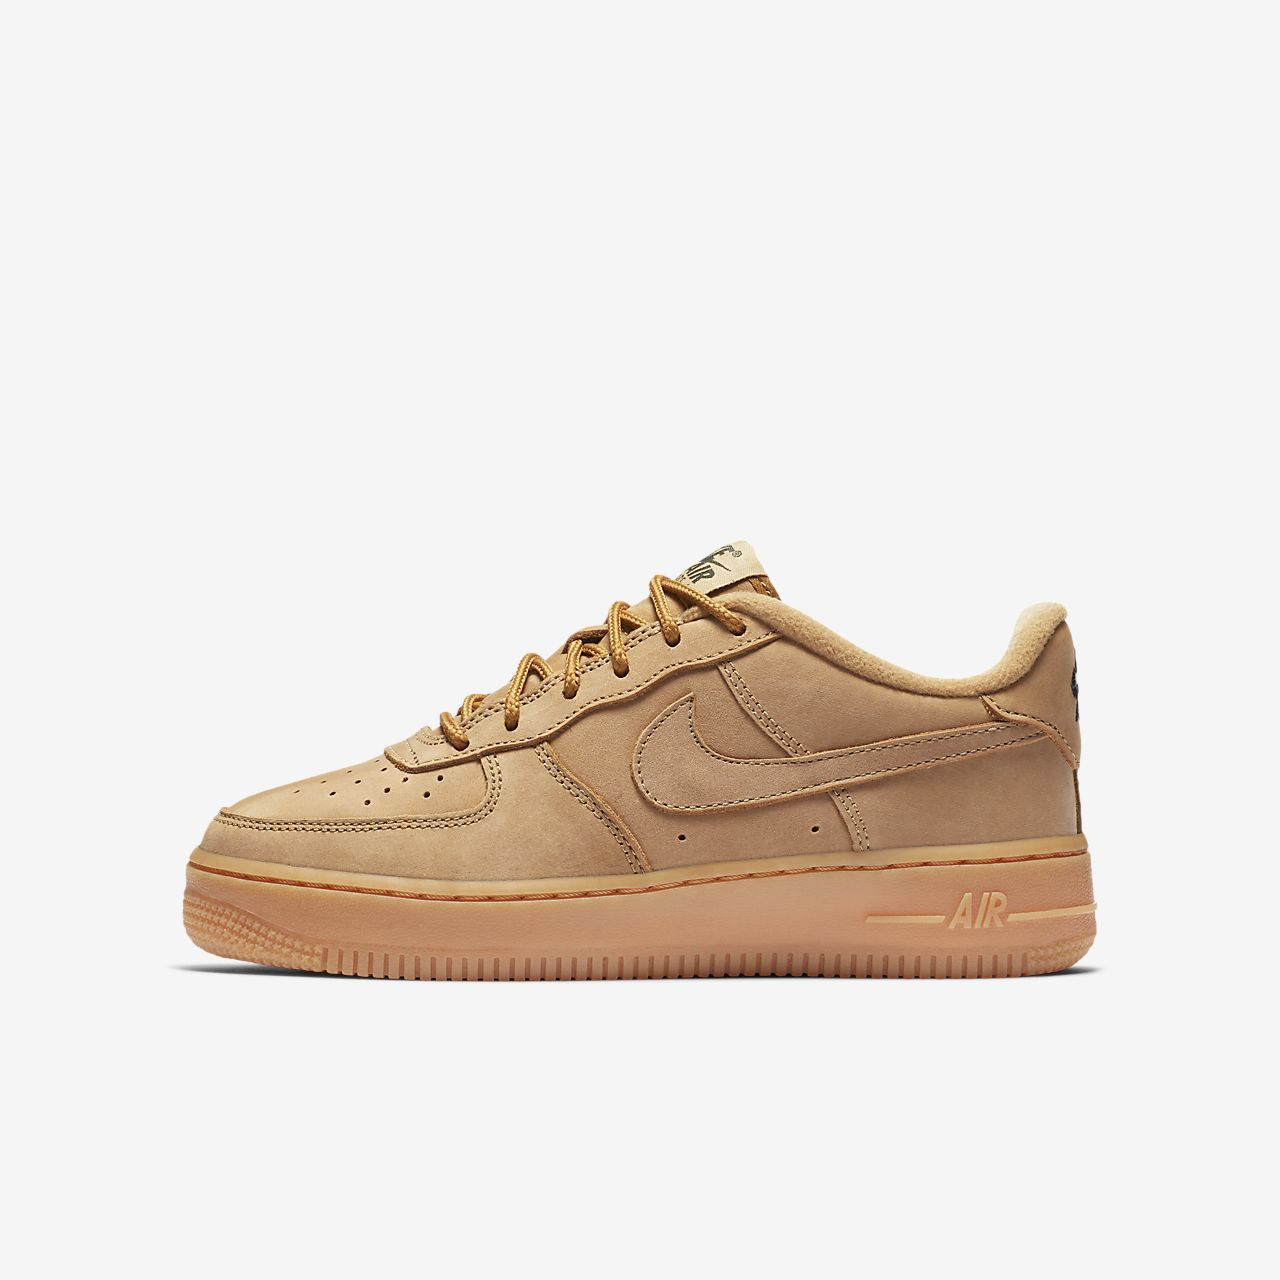 junior air force 1 lv8 'flax' trainer nz